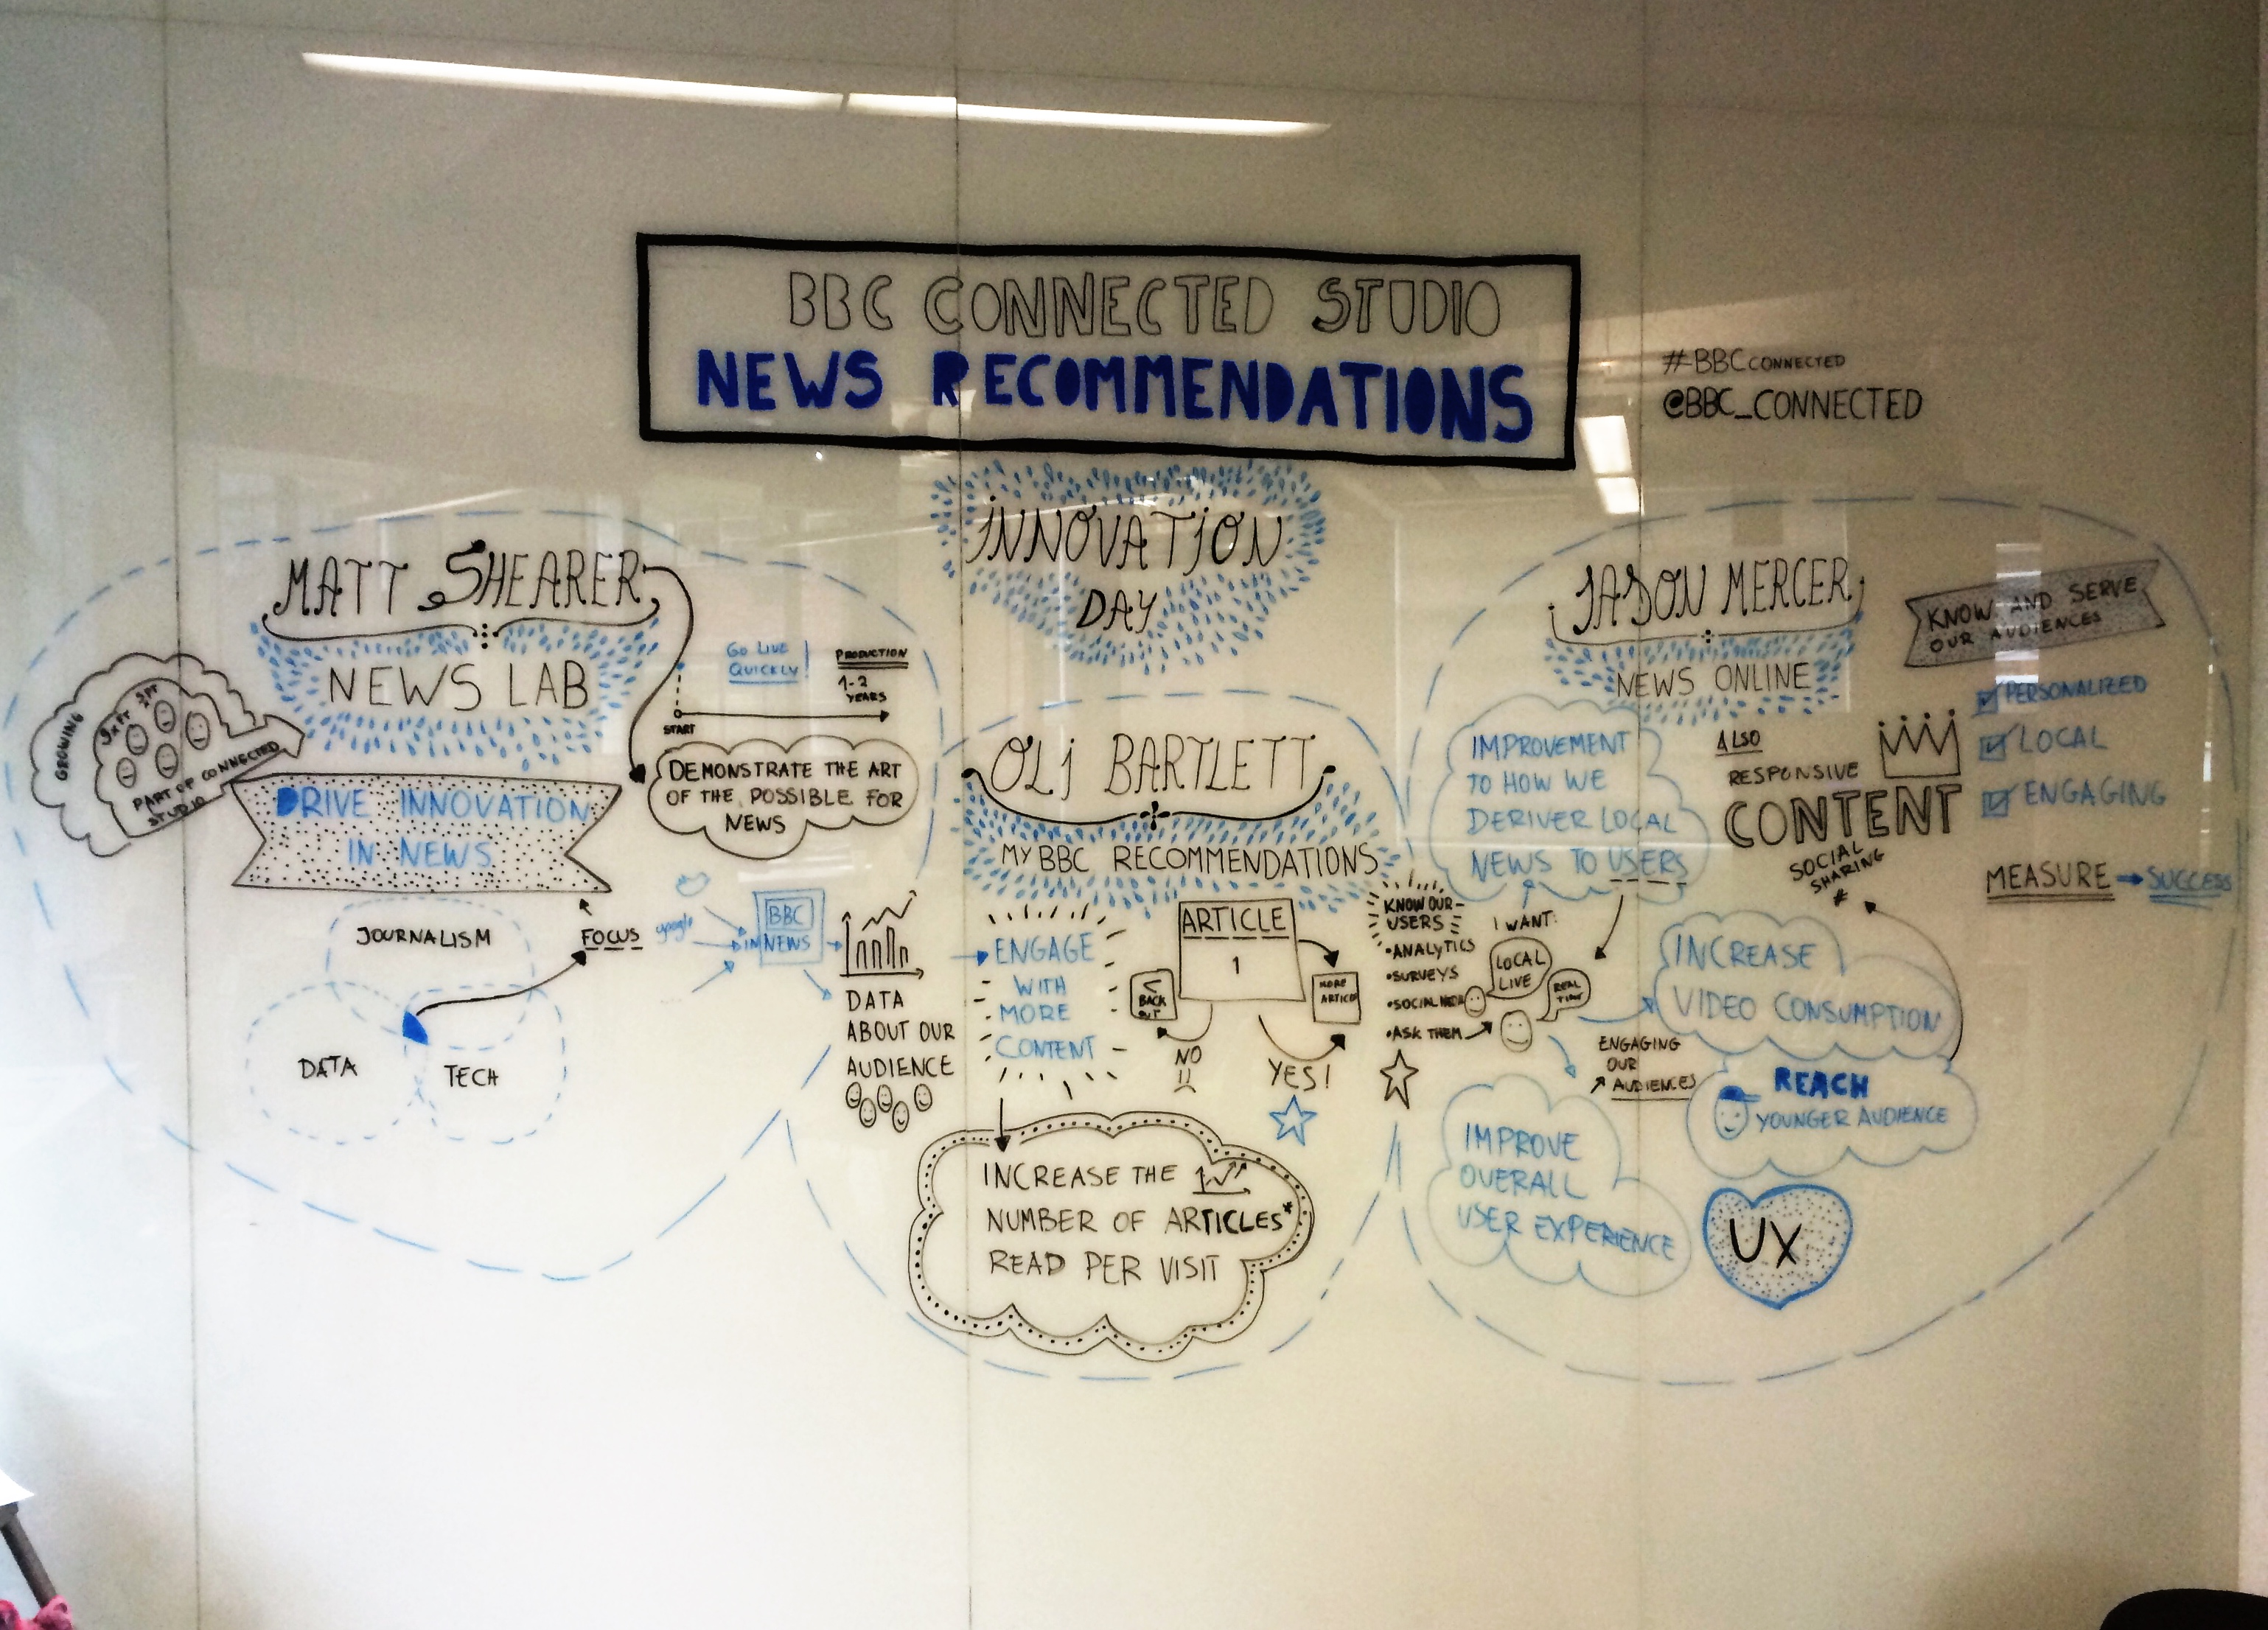 News Recommendations Illustration Representation by Deloitte, at Deloitte Digital in Clerkenwell, London